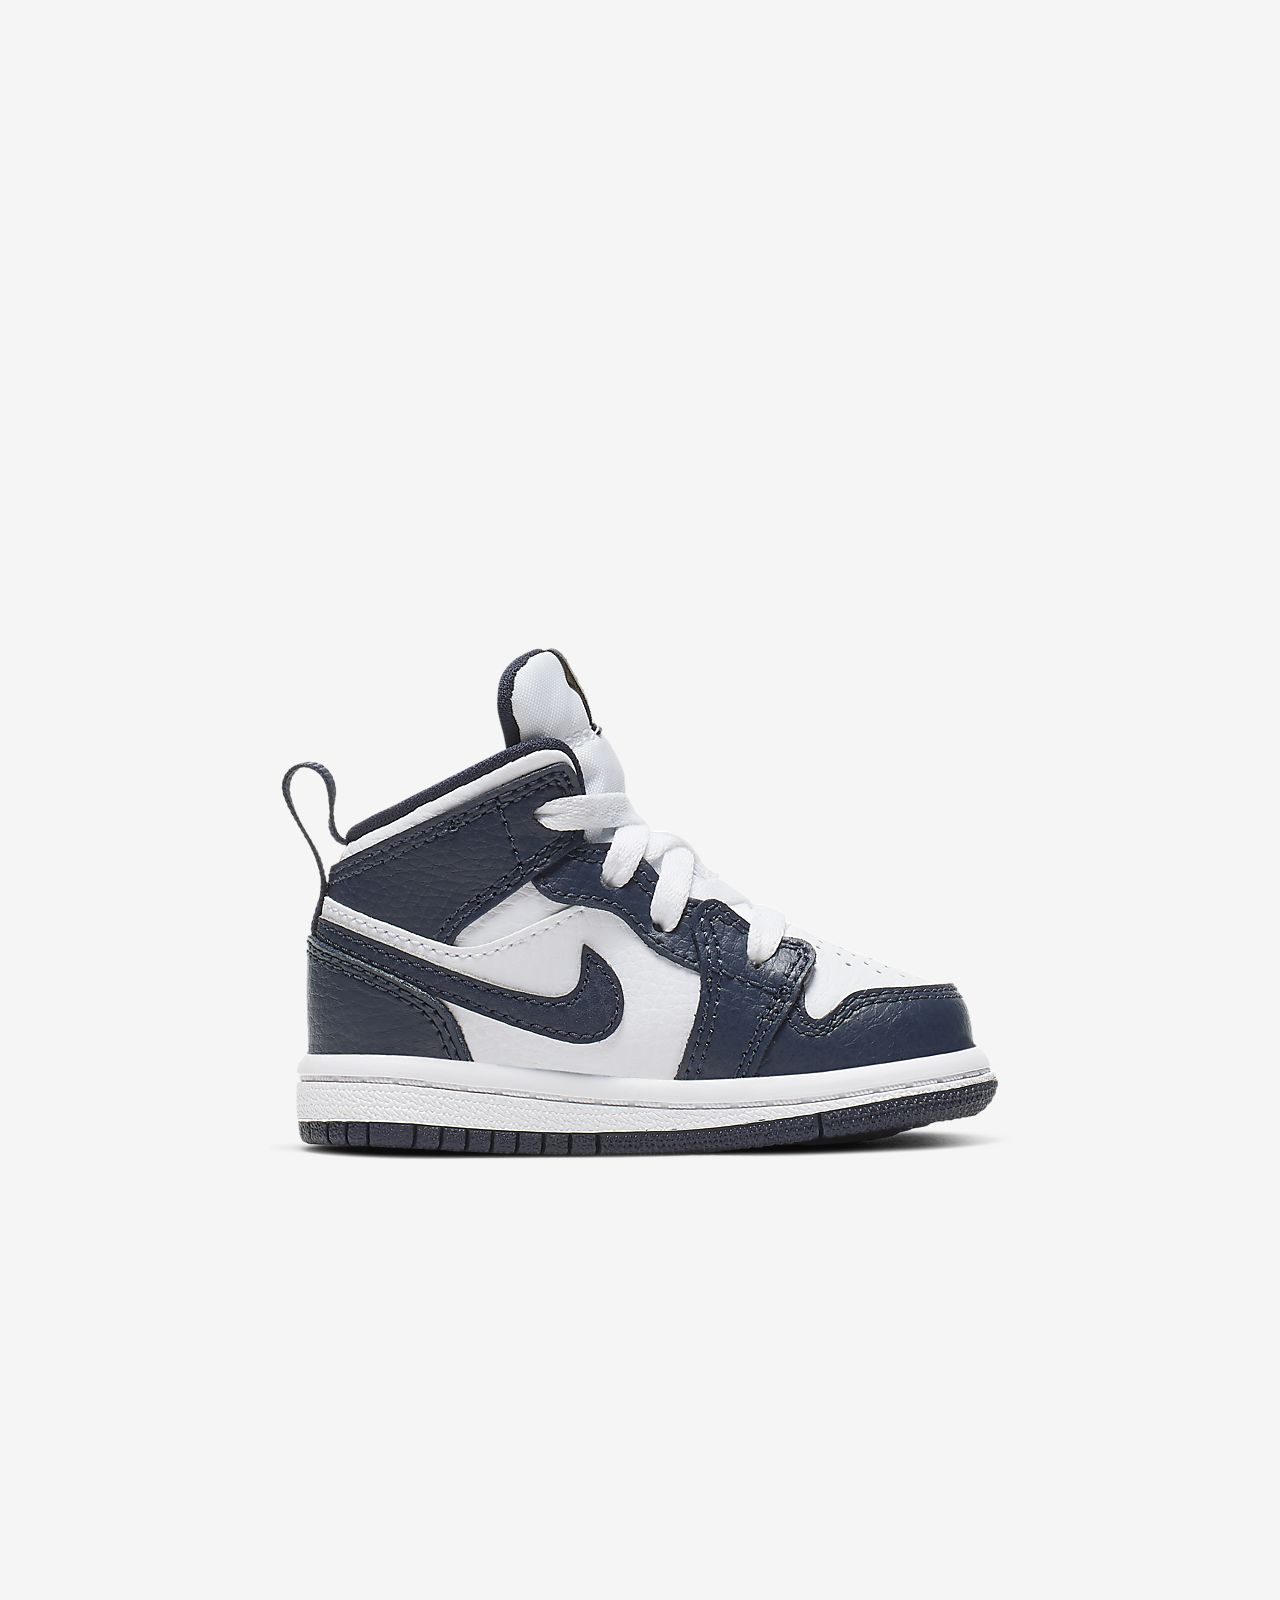 outlet store 41fbf e2239 Air Jordan 1 Mid Infant/Toddler Shoe